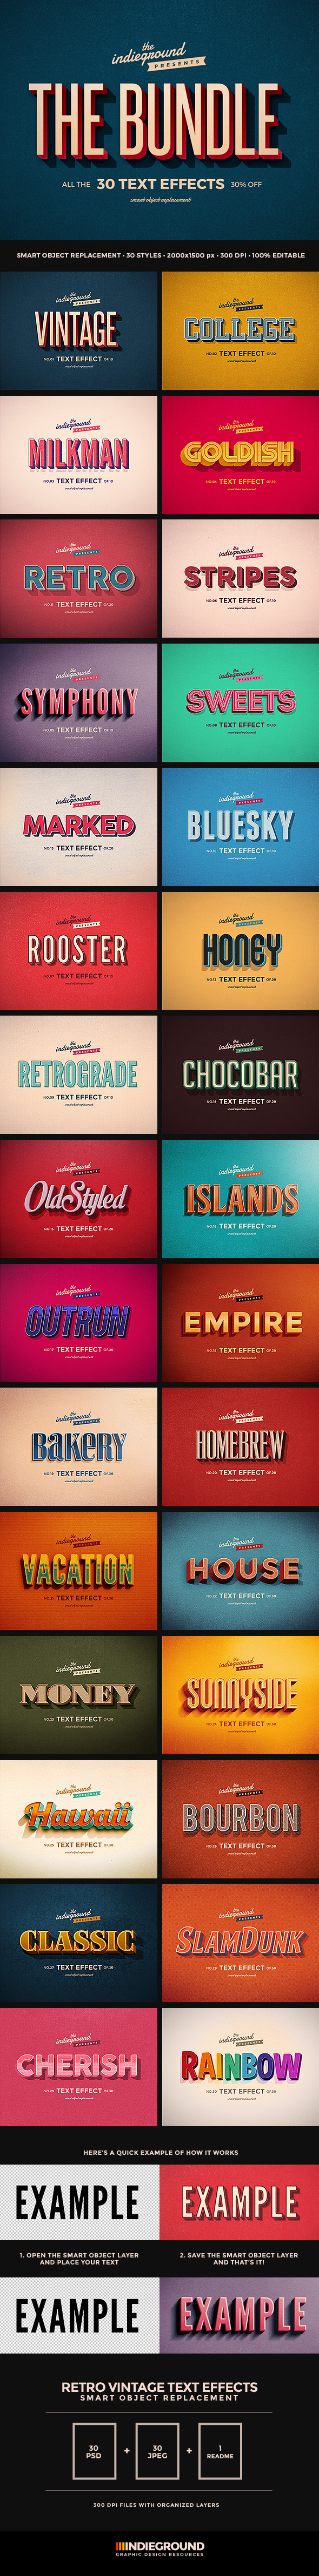 Text graphics designs templates from graphicriver